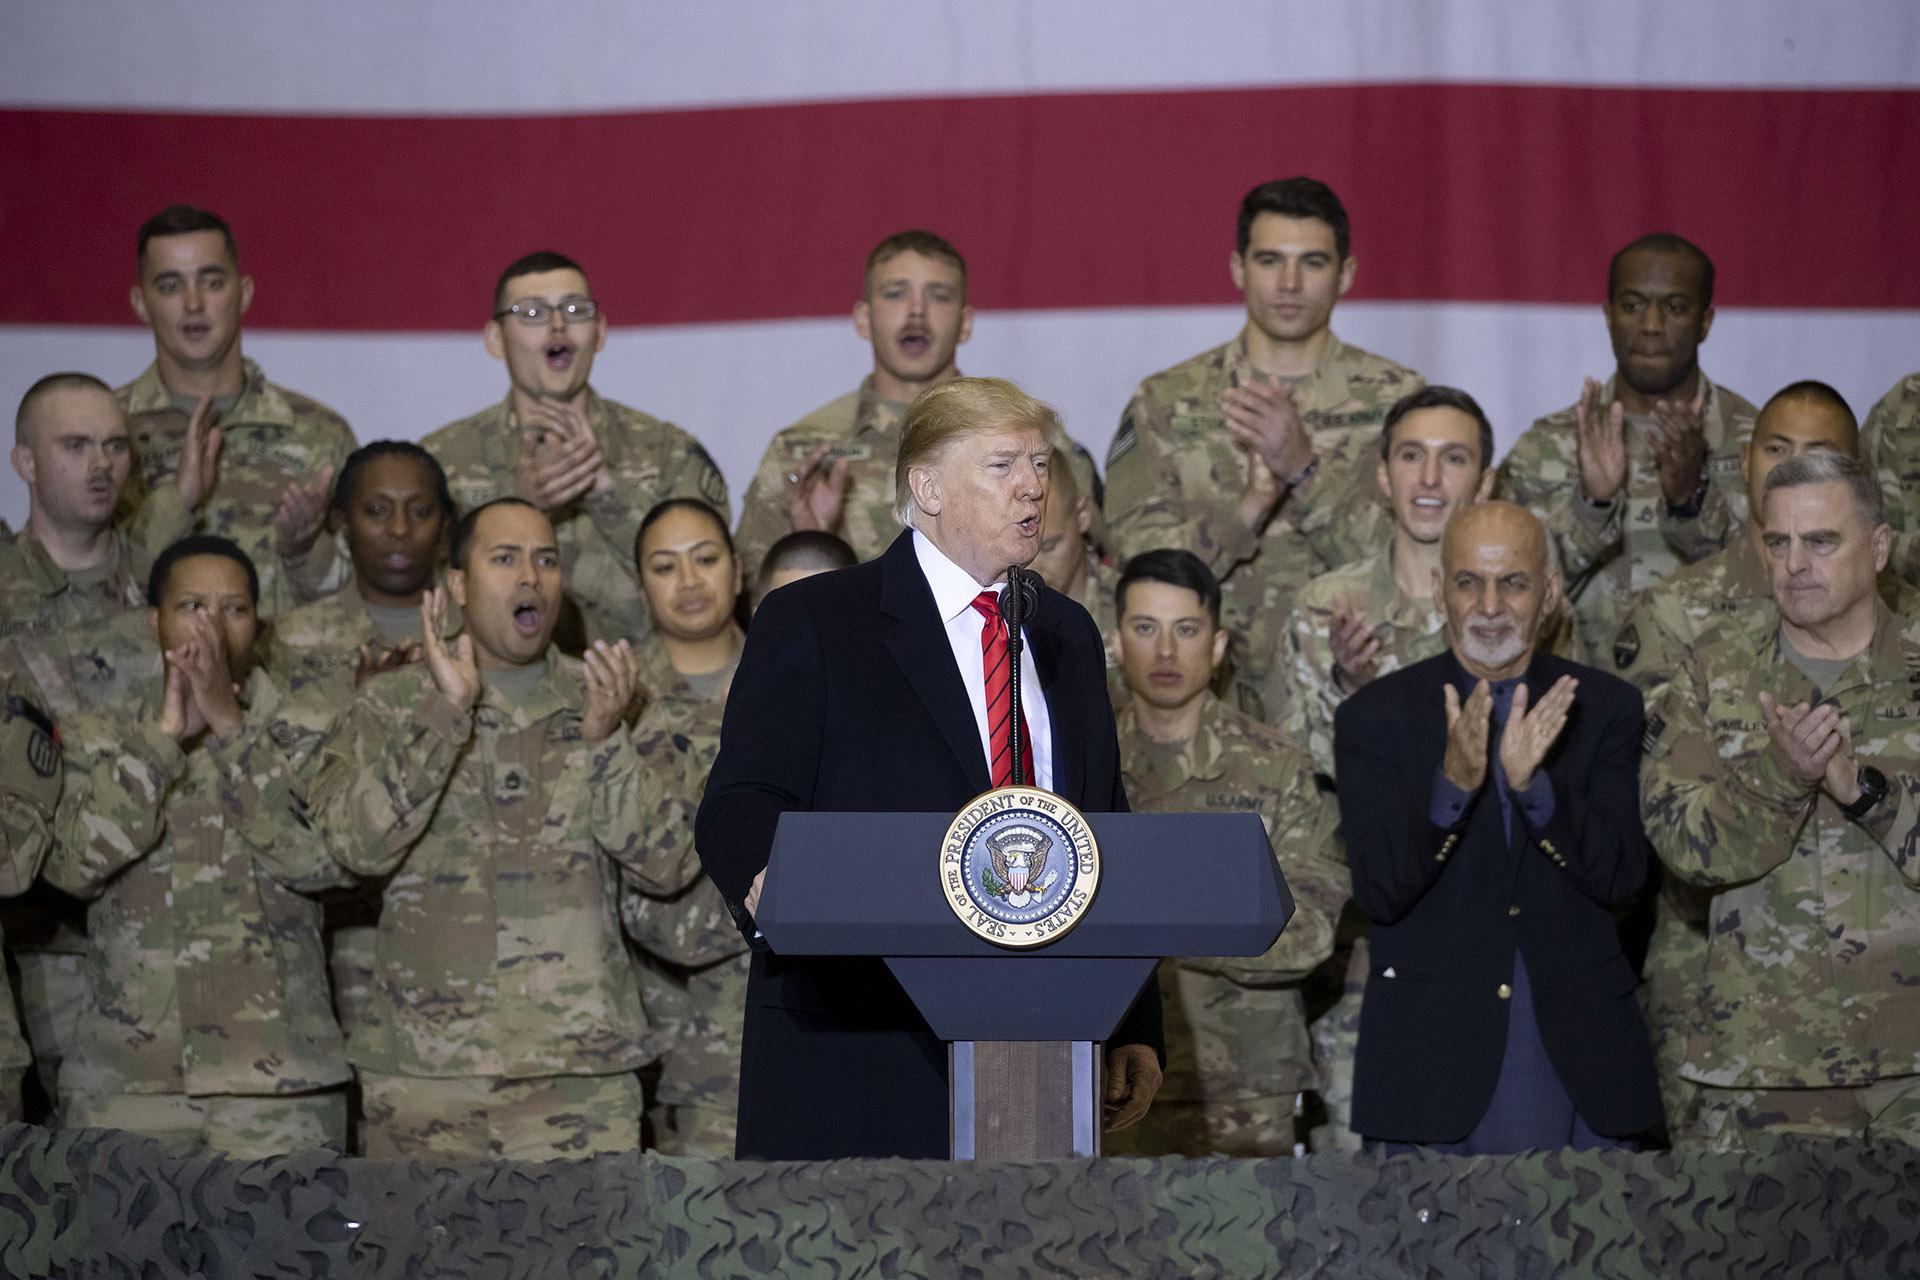 President Donald Trump, center, with Afghan President Ashraf Ghani, second from the right, and Joint Chiefs Chairman Gen. Mark Milley, right, while addressing members of the military during a surprise Thanksgiving Day visit, Thursday, Nov. 28, 2019, at Bagram Air Field, Afghanistan. (AP Photo / Alex Brandon)